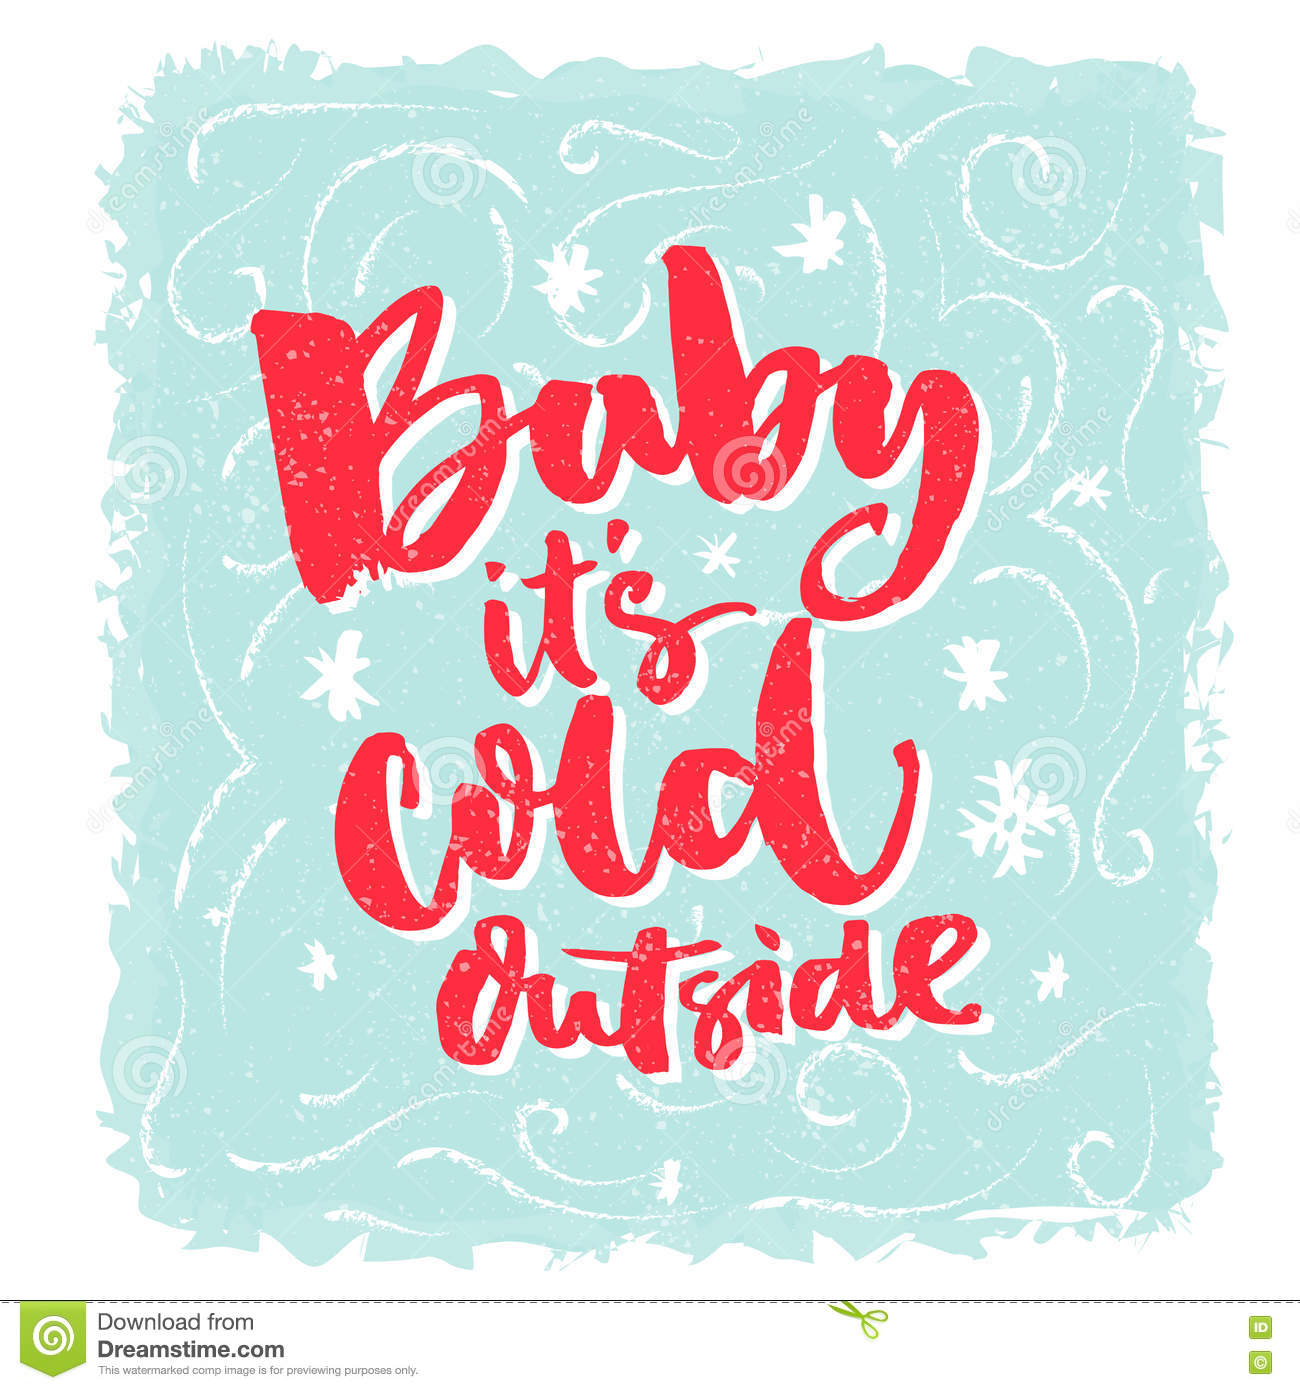 Baby Its Cold Outside Romantic Winter Phrase For Greeting Cards